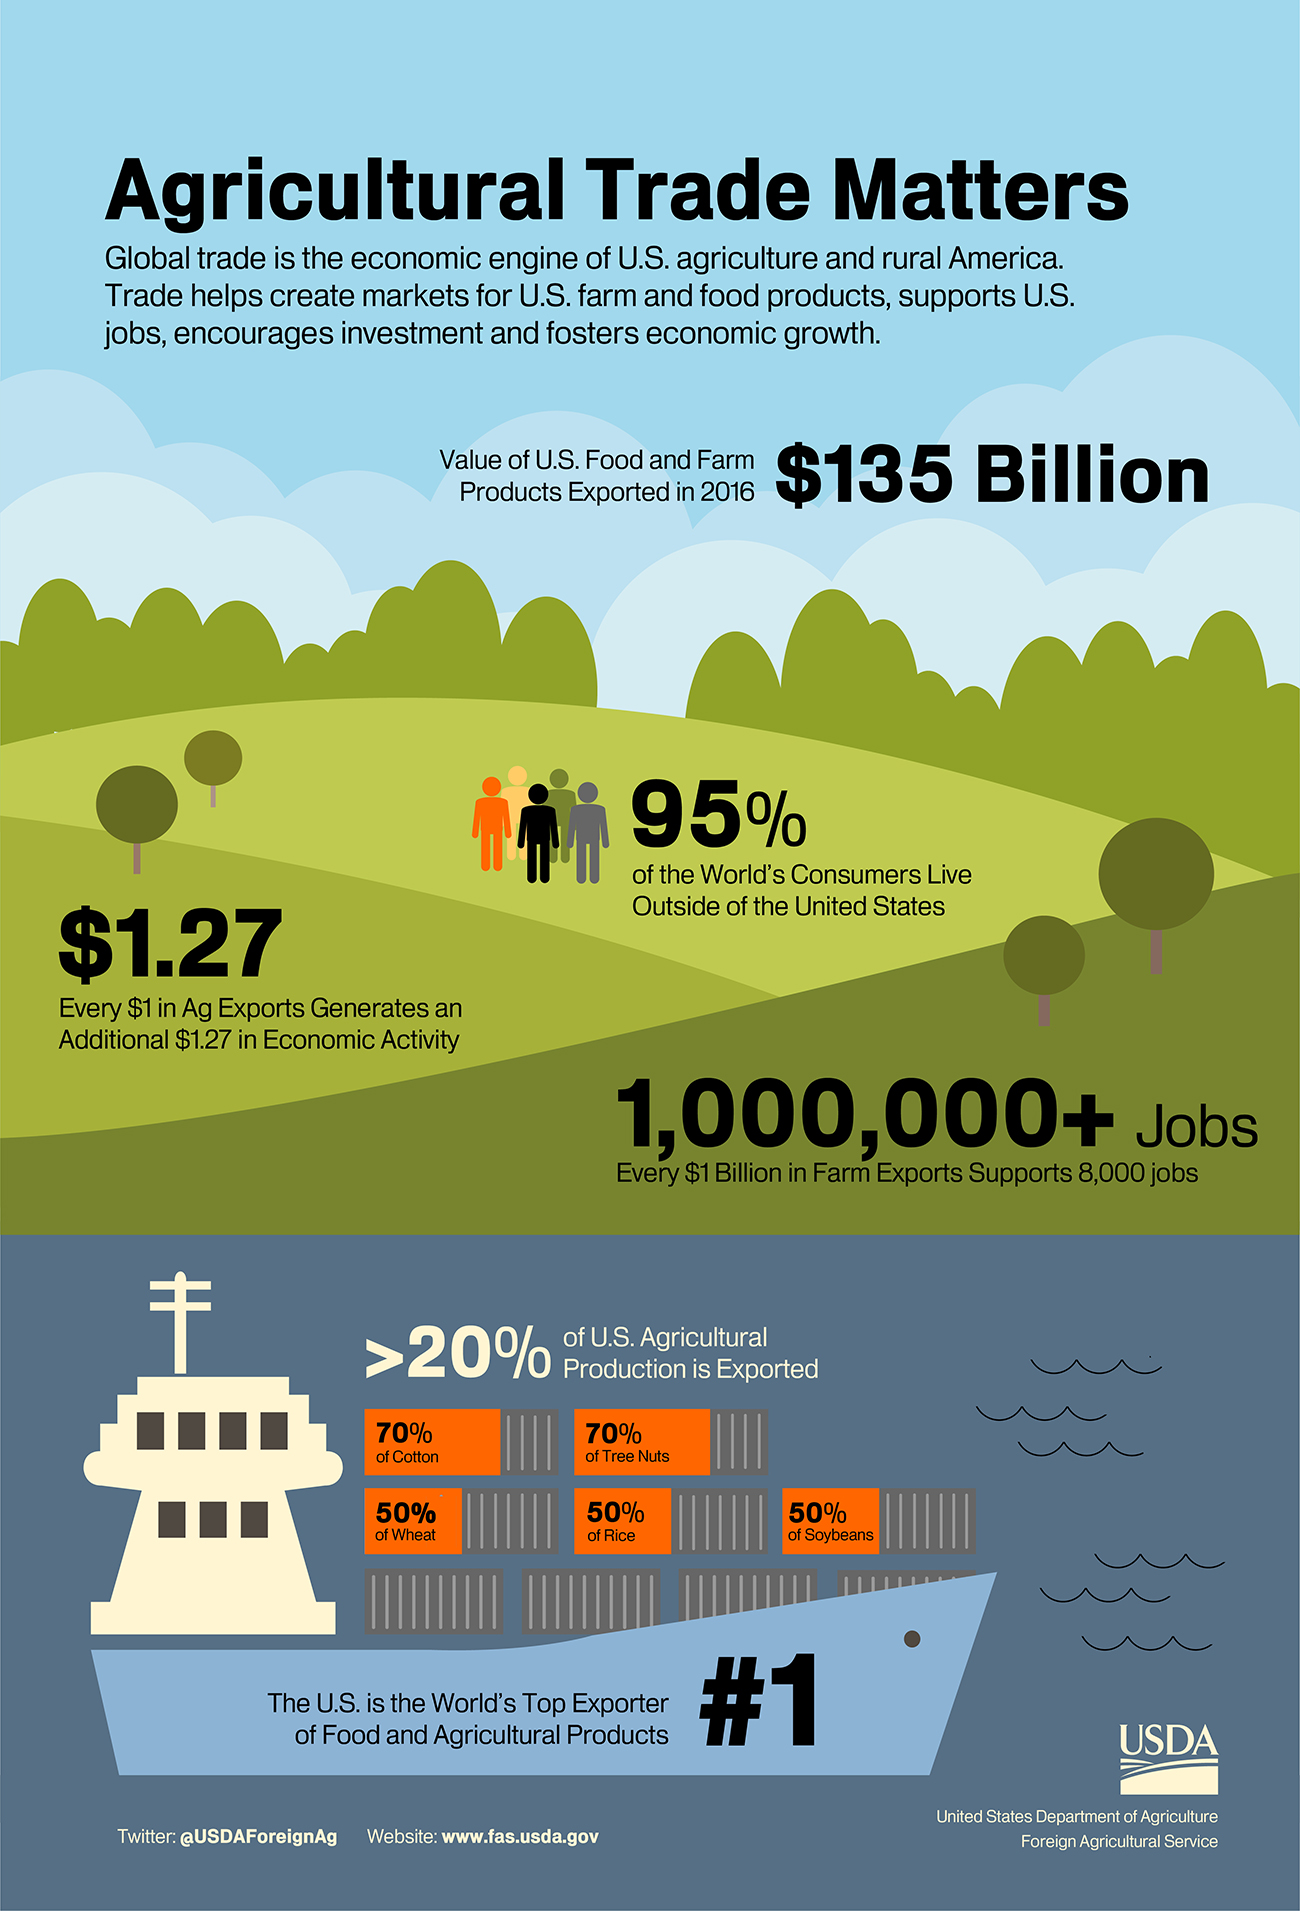 Agricultural Trade Matters Infographic